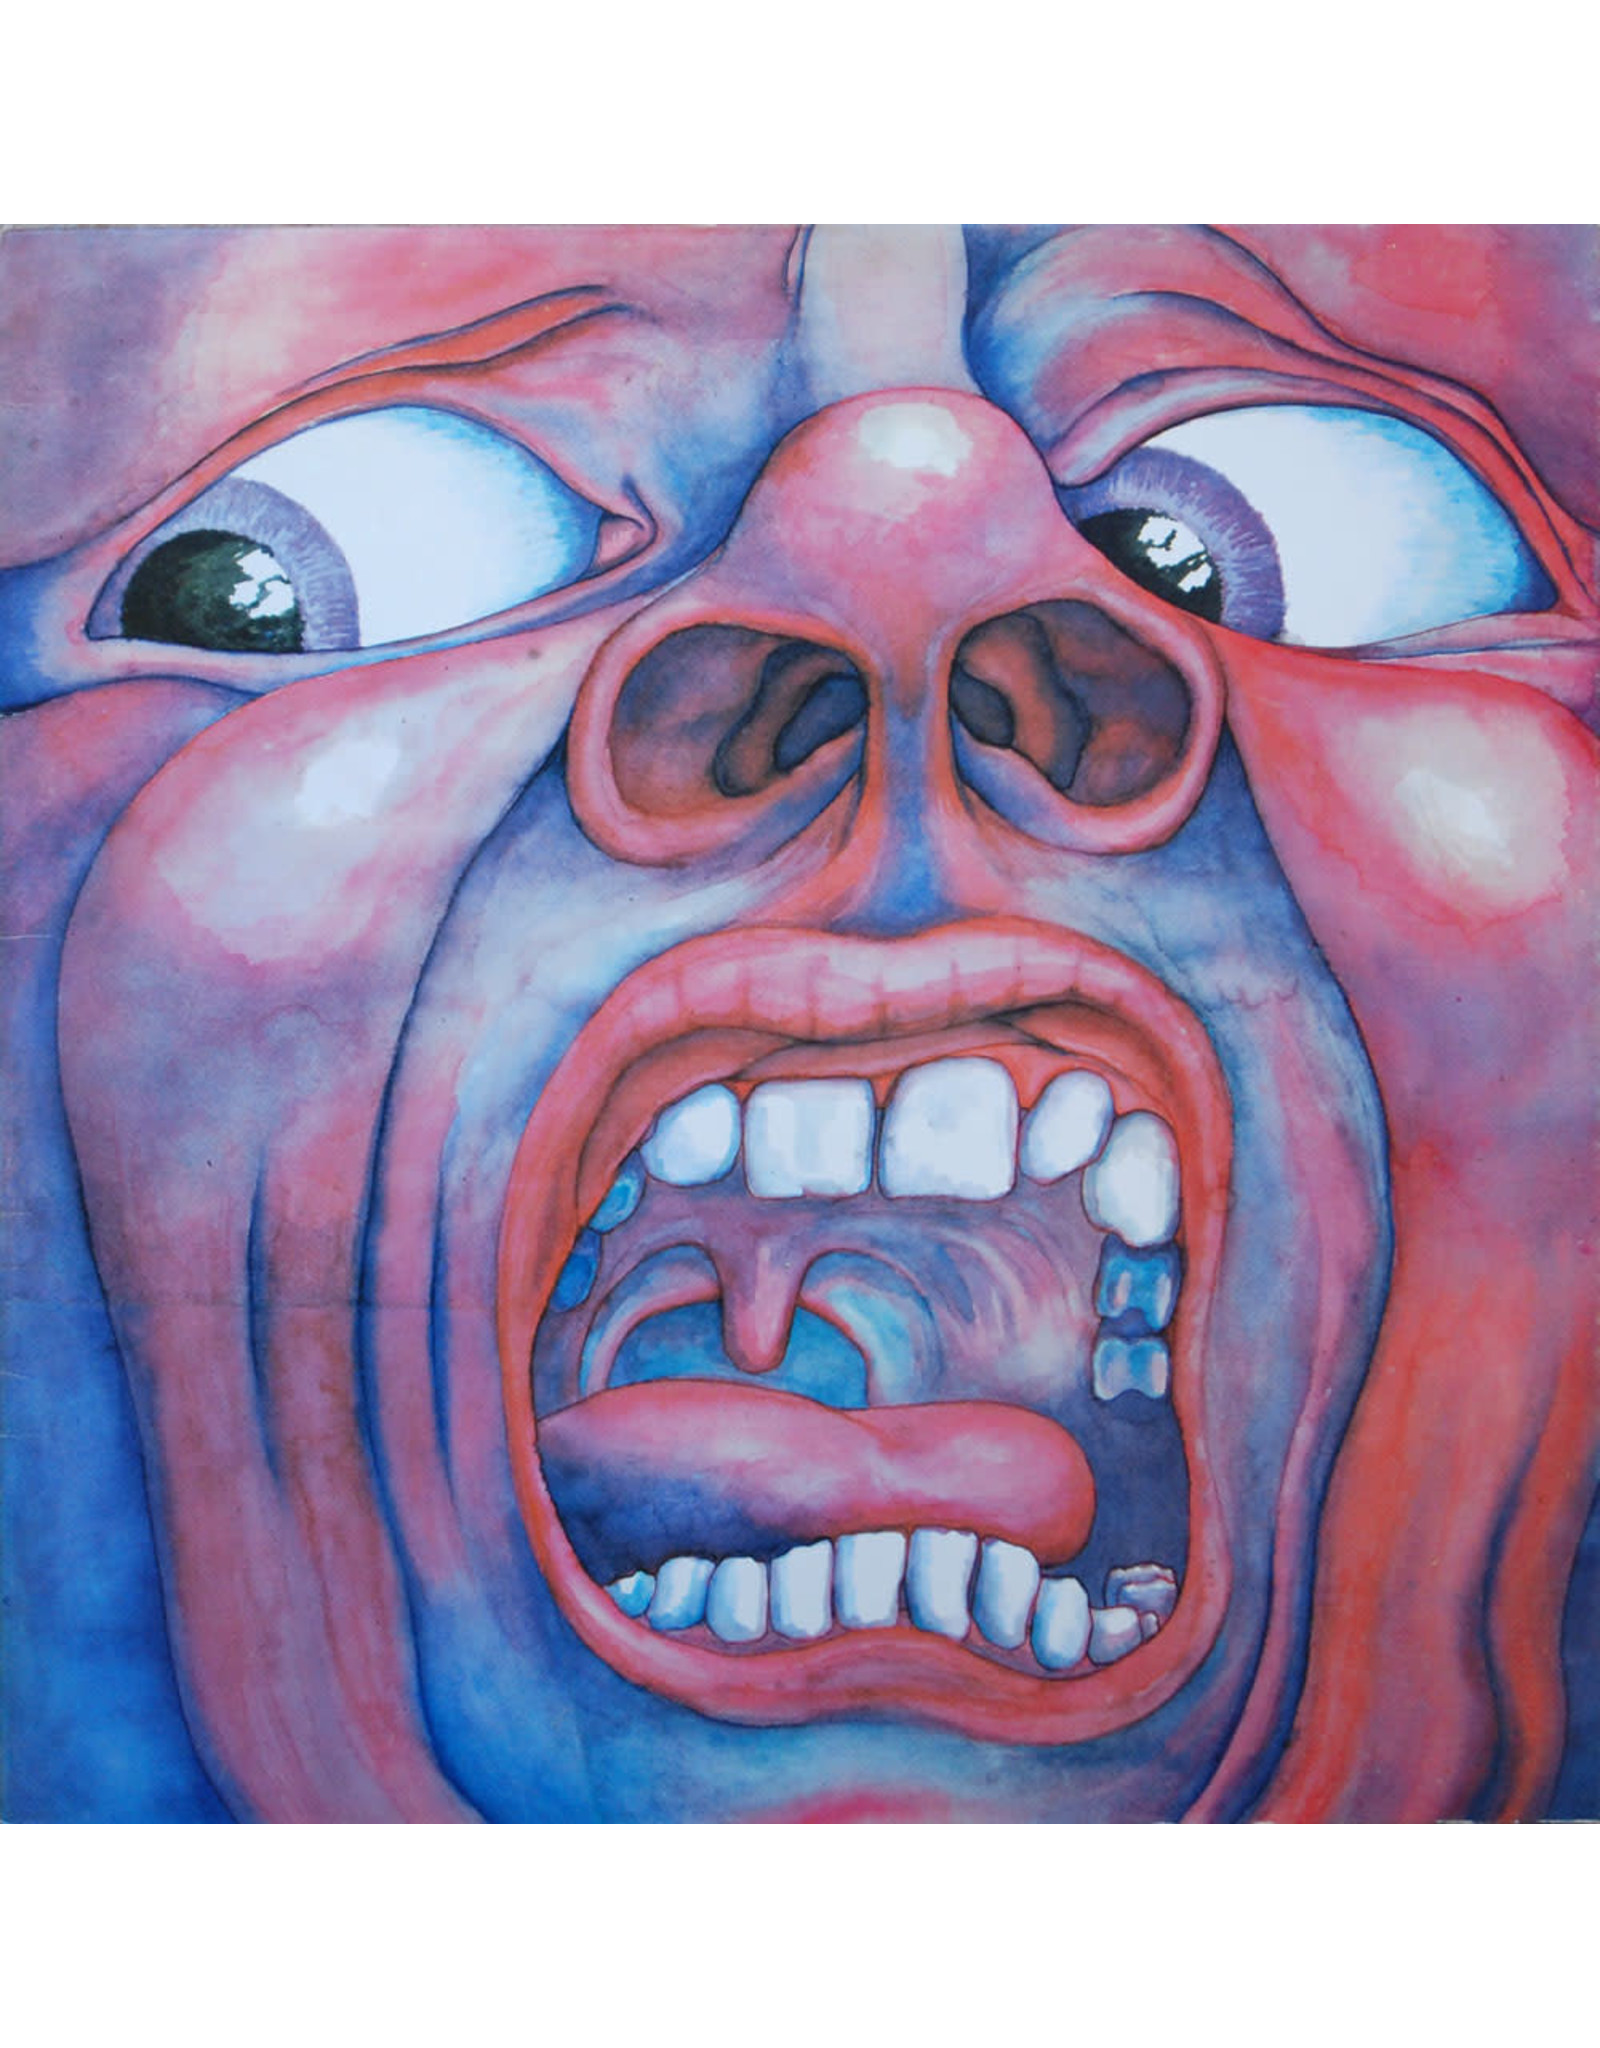 King Crimson - In Court Of the Crimson King